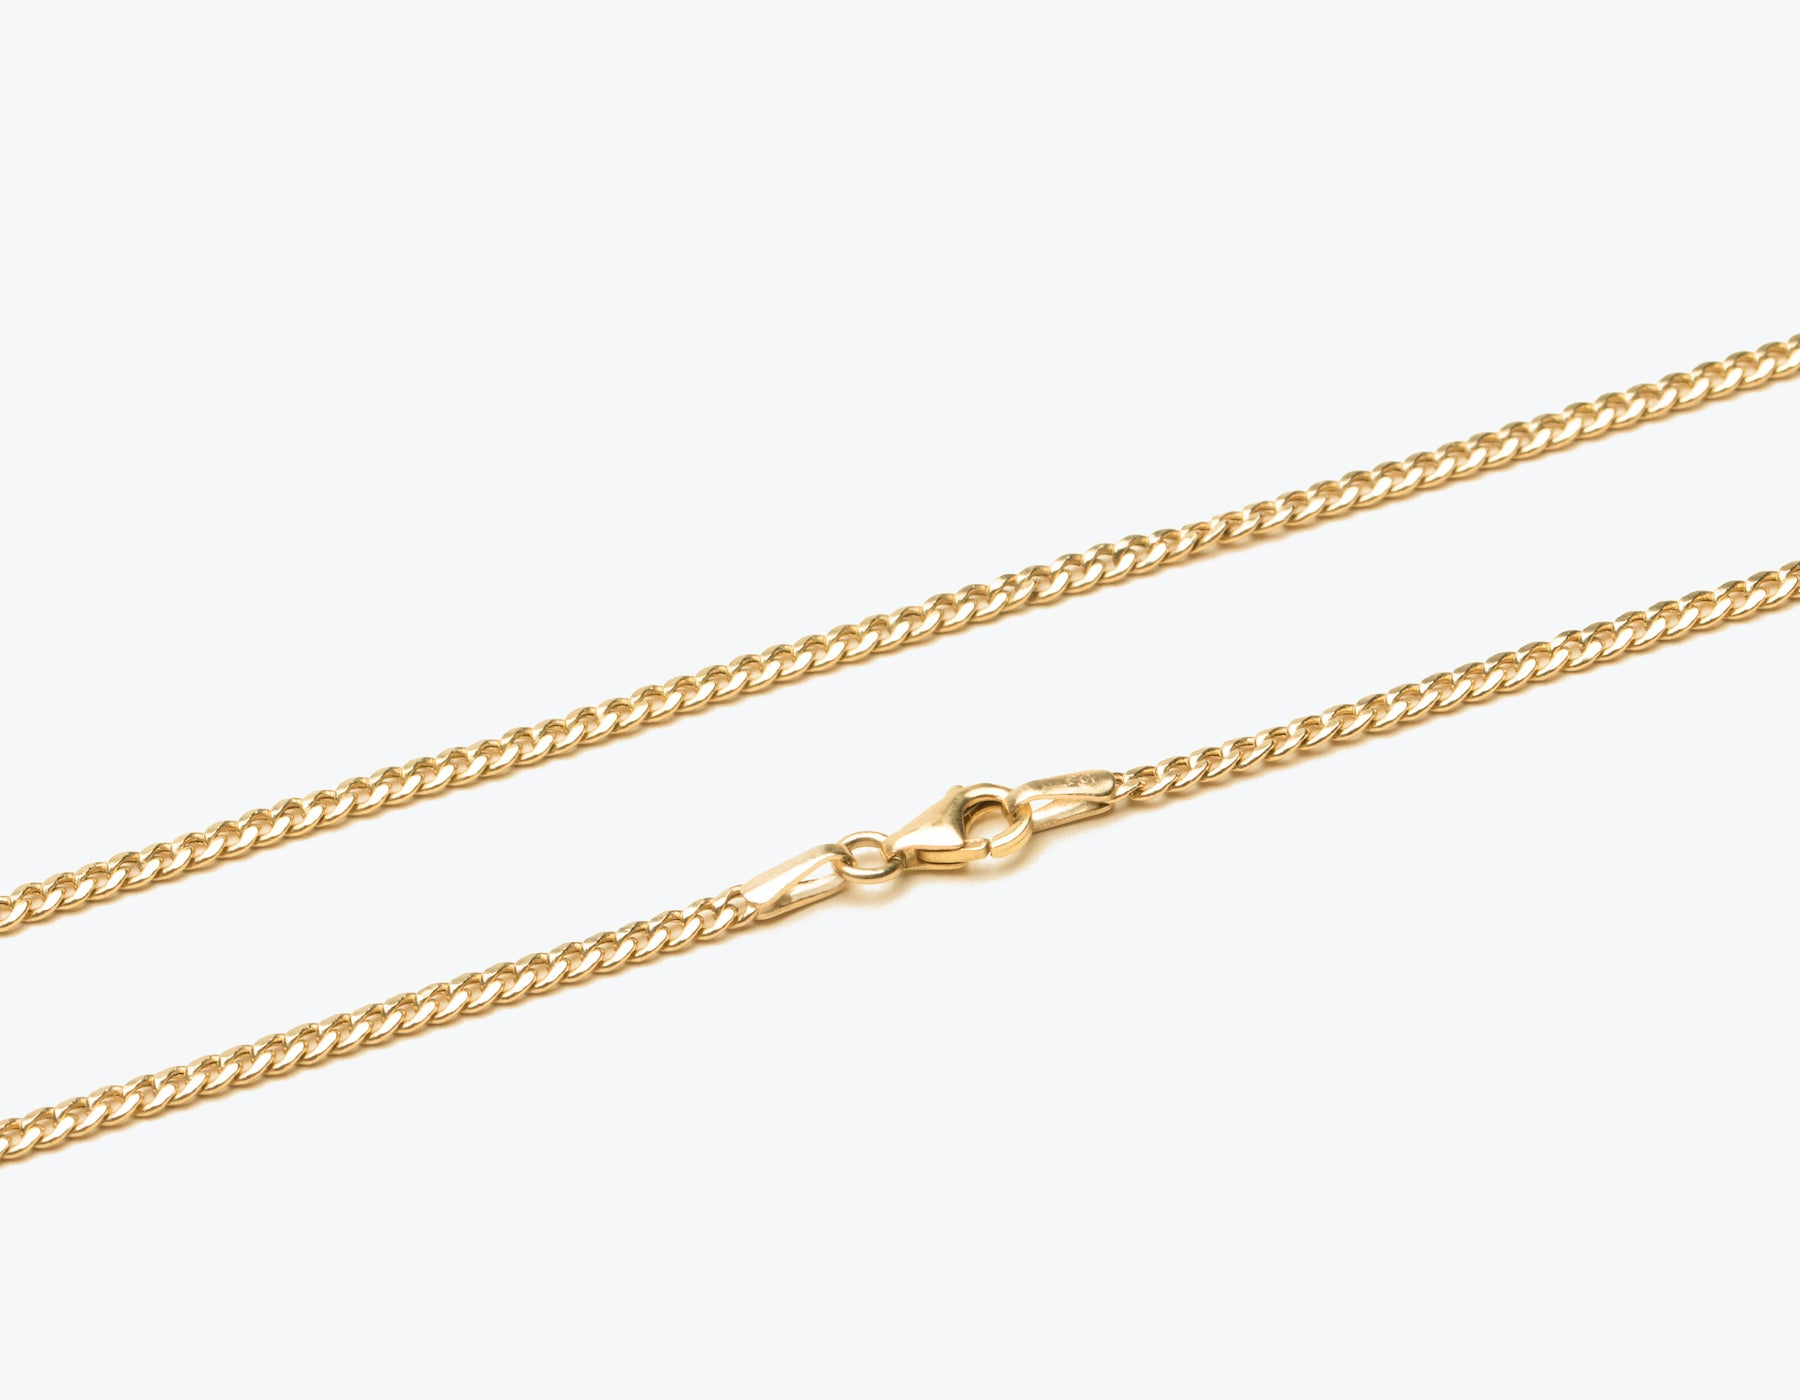 Simple classic 14k solid gold Cuban Link Chain necklace with lobster clasp by Vrai & Oro sustainable jewelry, 14K Yellow Gold